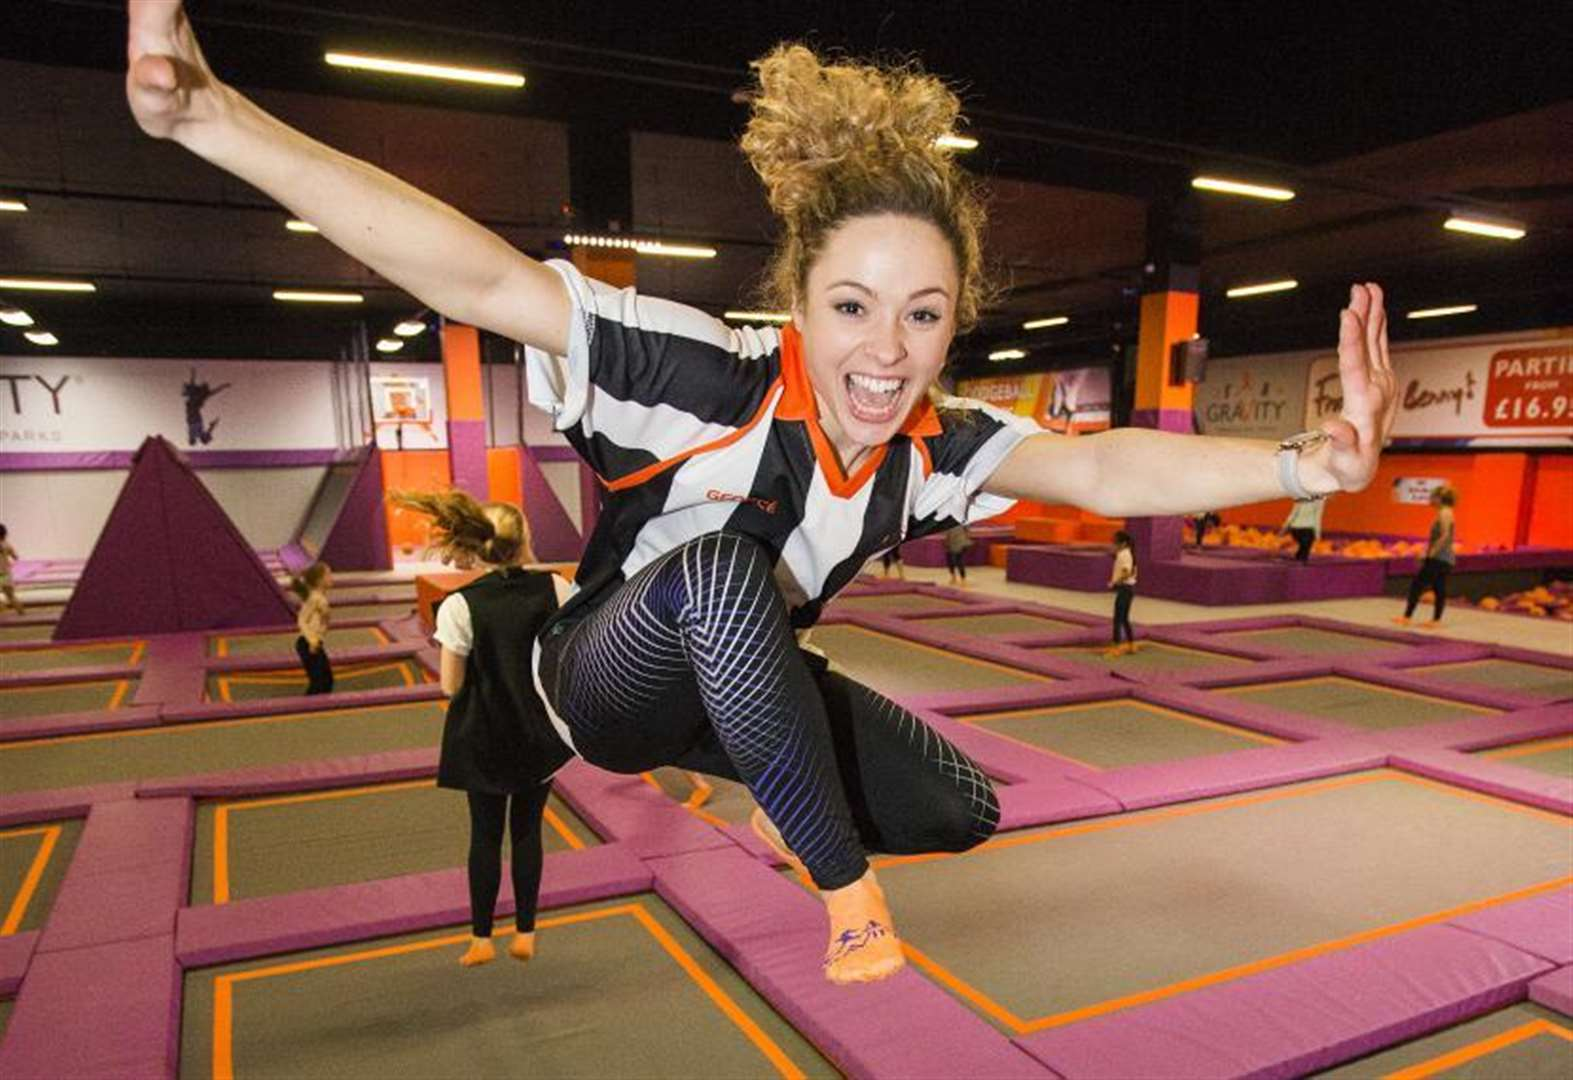 Girl rushed to hospital from trampoline park